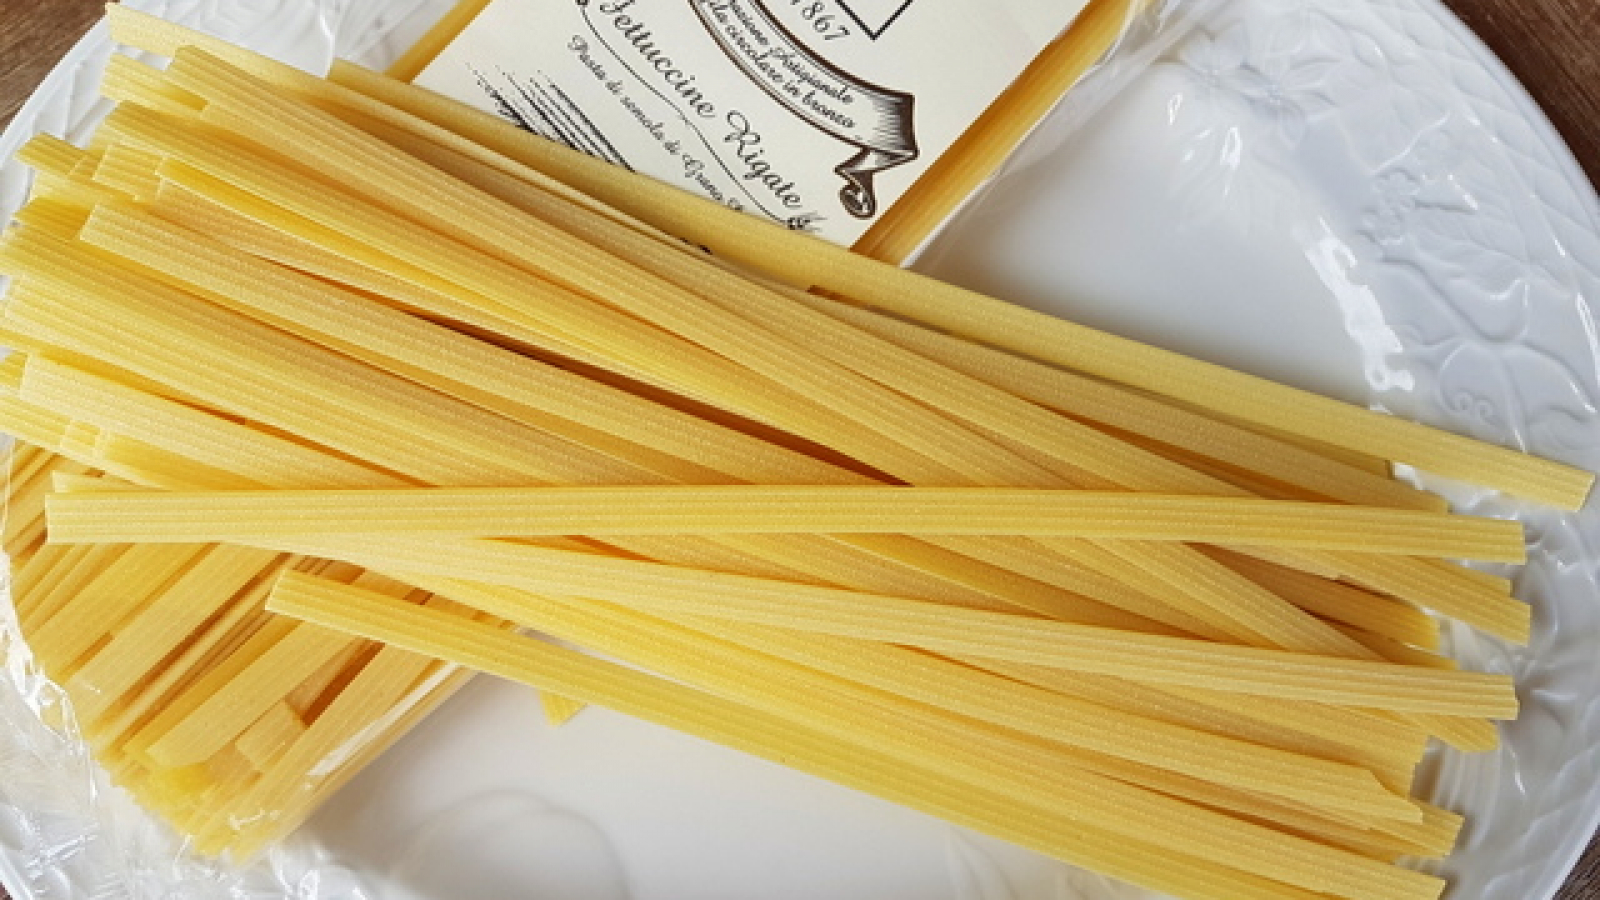 How to cook fettuccine pasta in the microwave